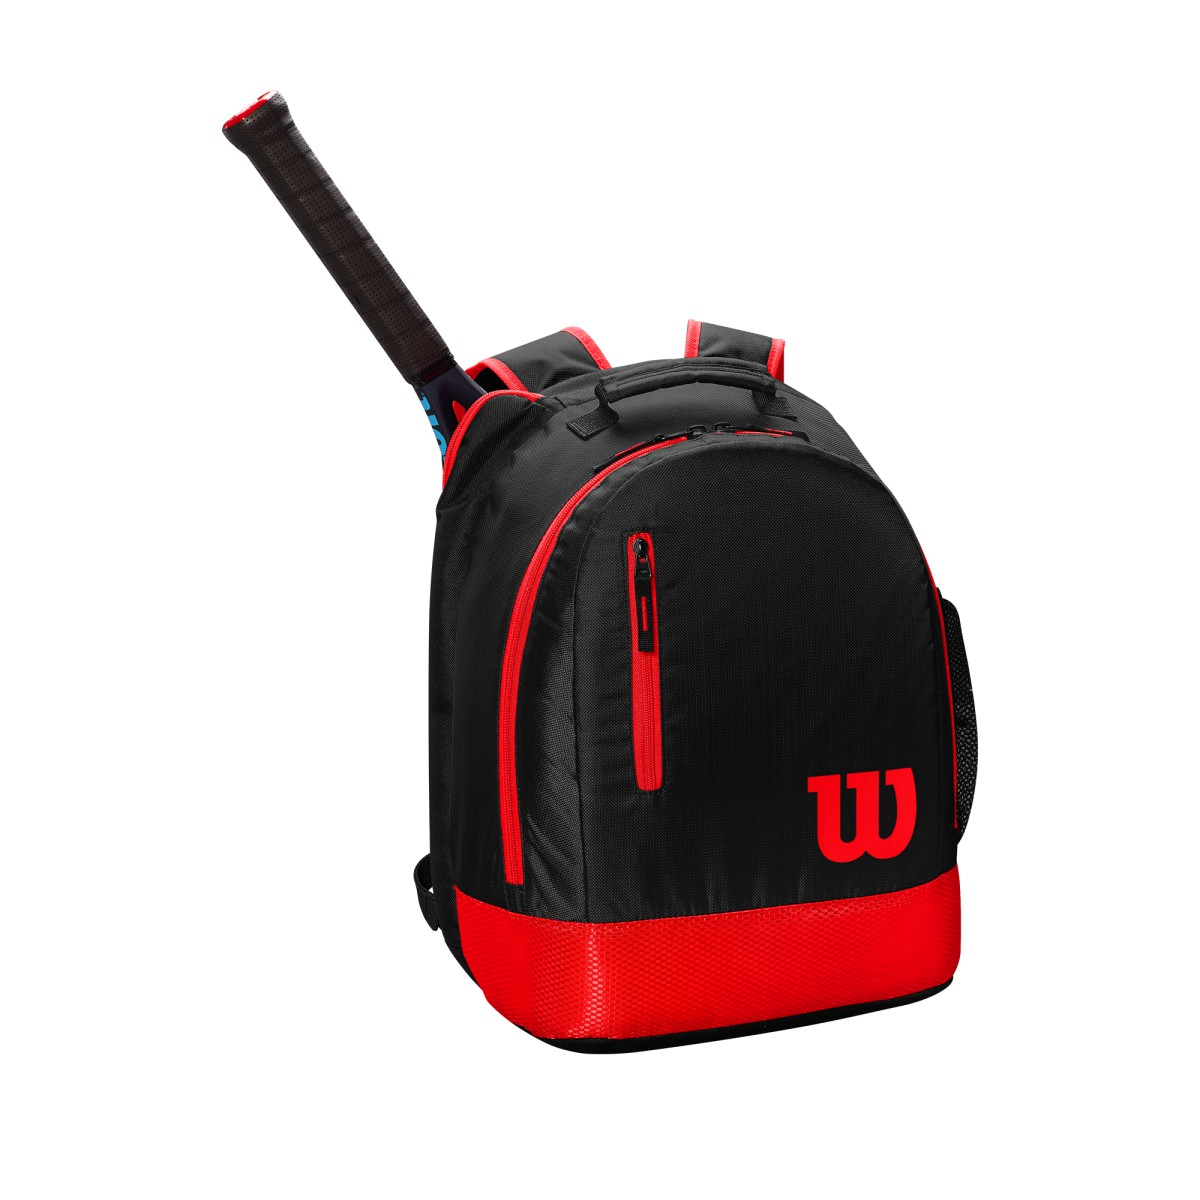 Wilson YOUTH Backpack Bk/Rd, Wilson YOUTH Backpack Bk/Rd в Новосибирске, Wilson YOUTH Backpack Bk/Rd цена, Wilson YOUTH Backpack Bk/Rd купить, Wilson YOUTH Backpack Bk/Rd приобрети, Wilson YOUTH Backpack Bk/Rd дешево, Wilson YOUTH Backpack Bk/Rd с доставкой, Wilson YOUTH Backpack Bk/Rd от дистрибьютора.